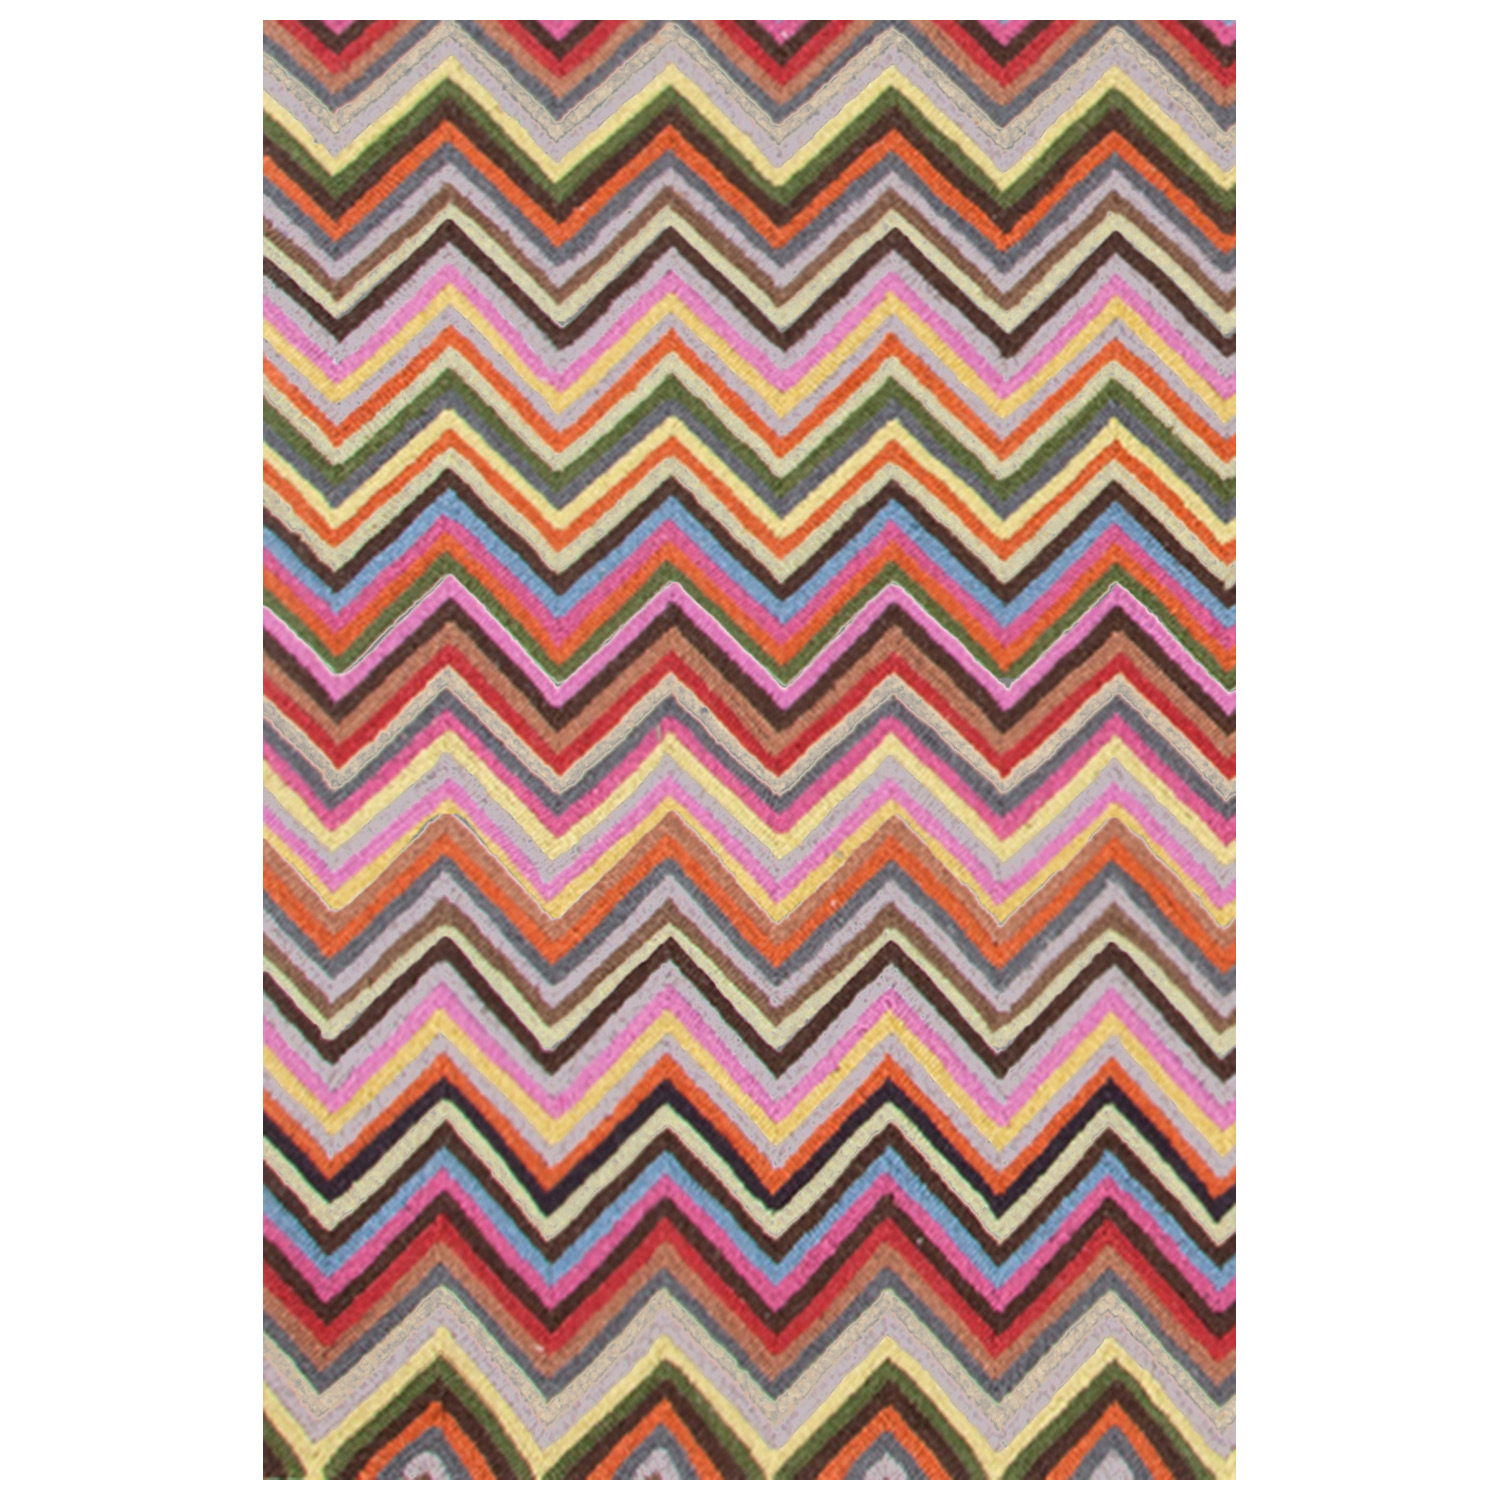 Lovely Rectangle Colorful Dash And Albert Rugs In Chevron Pattern For Floor Cover Ideas